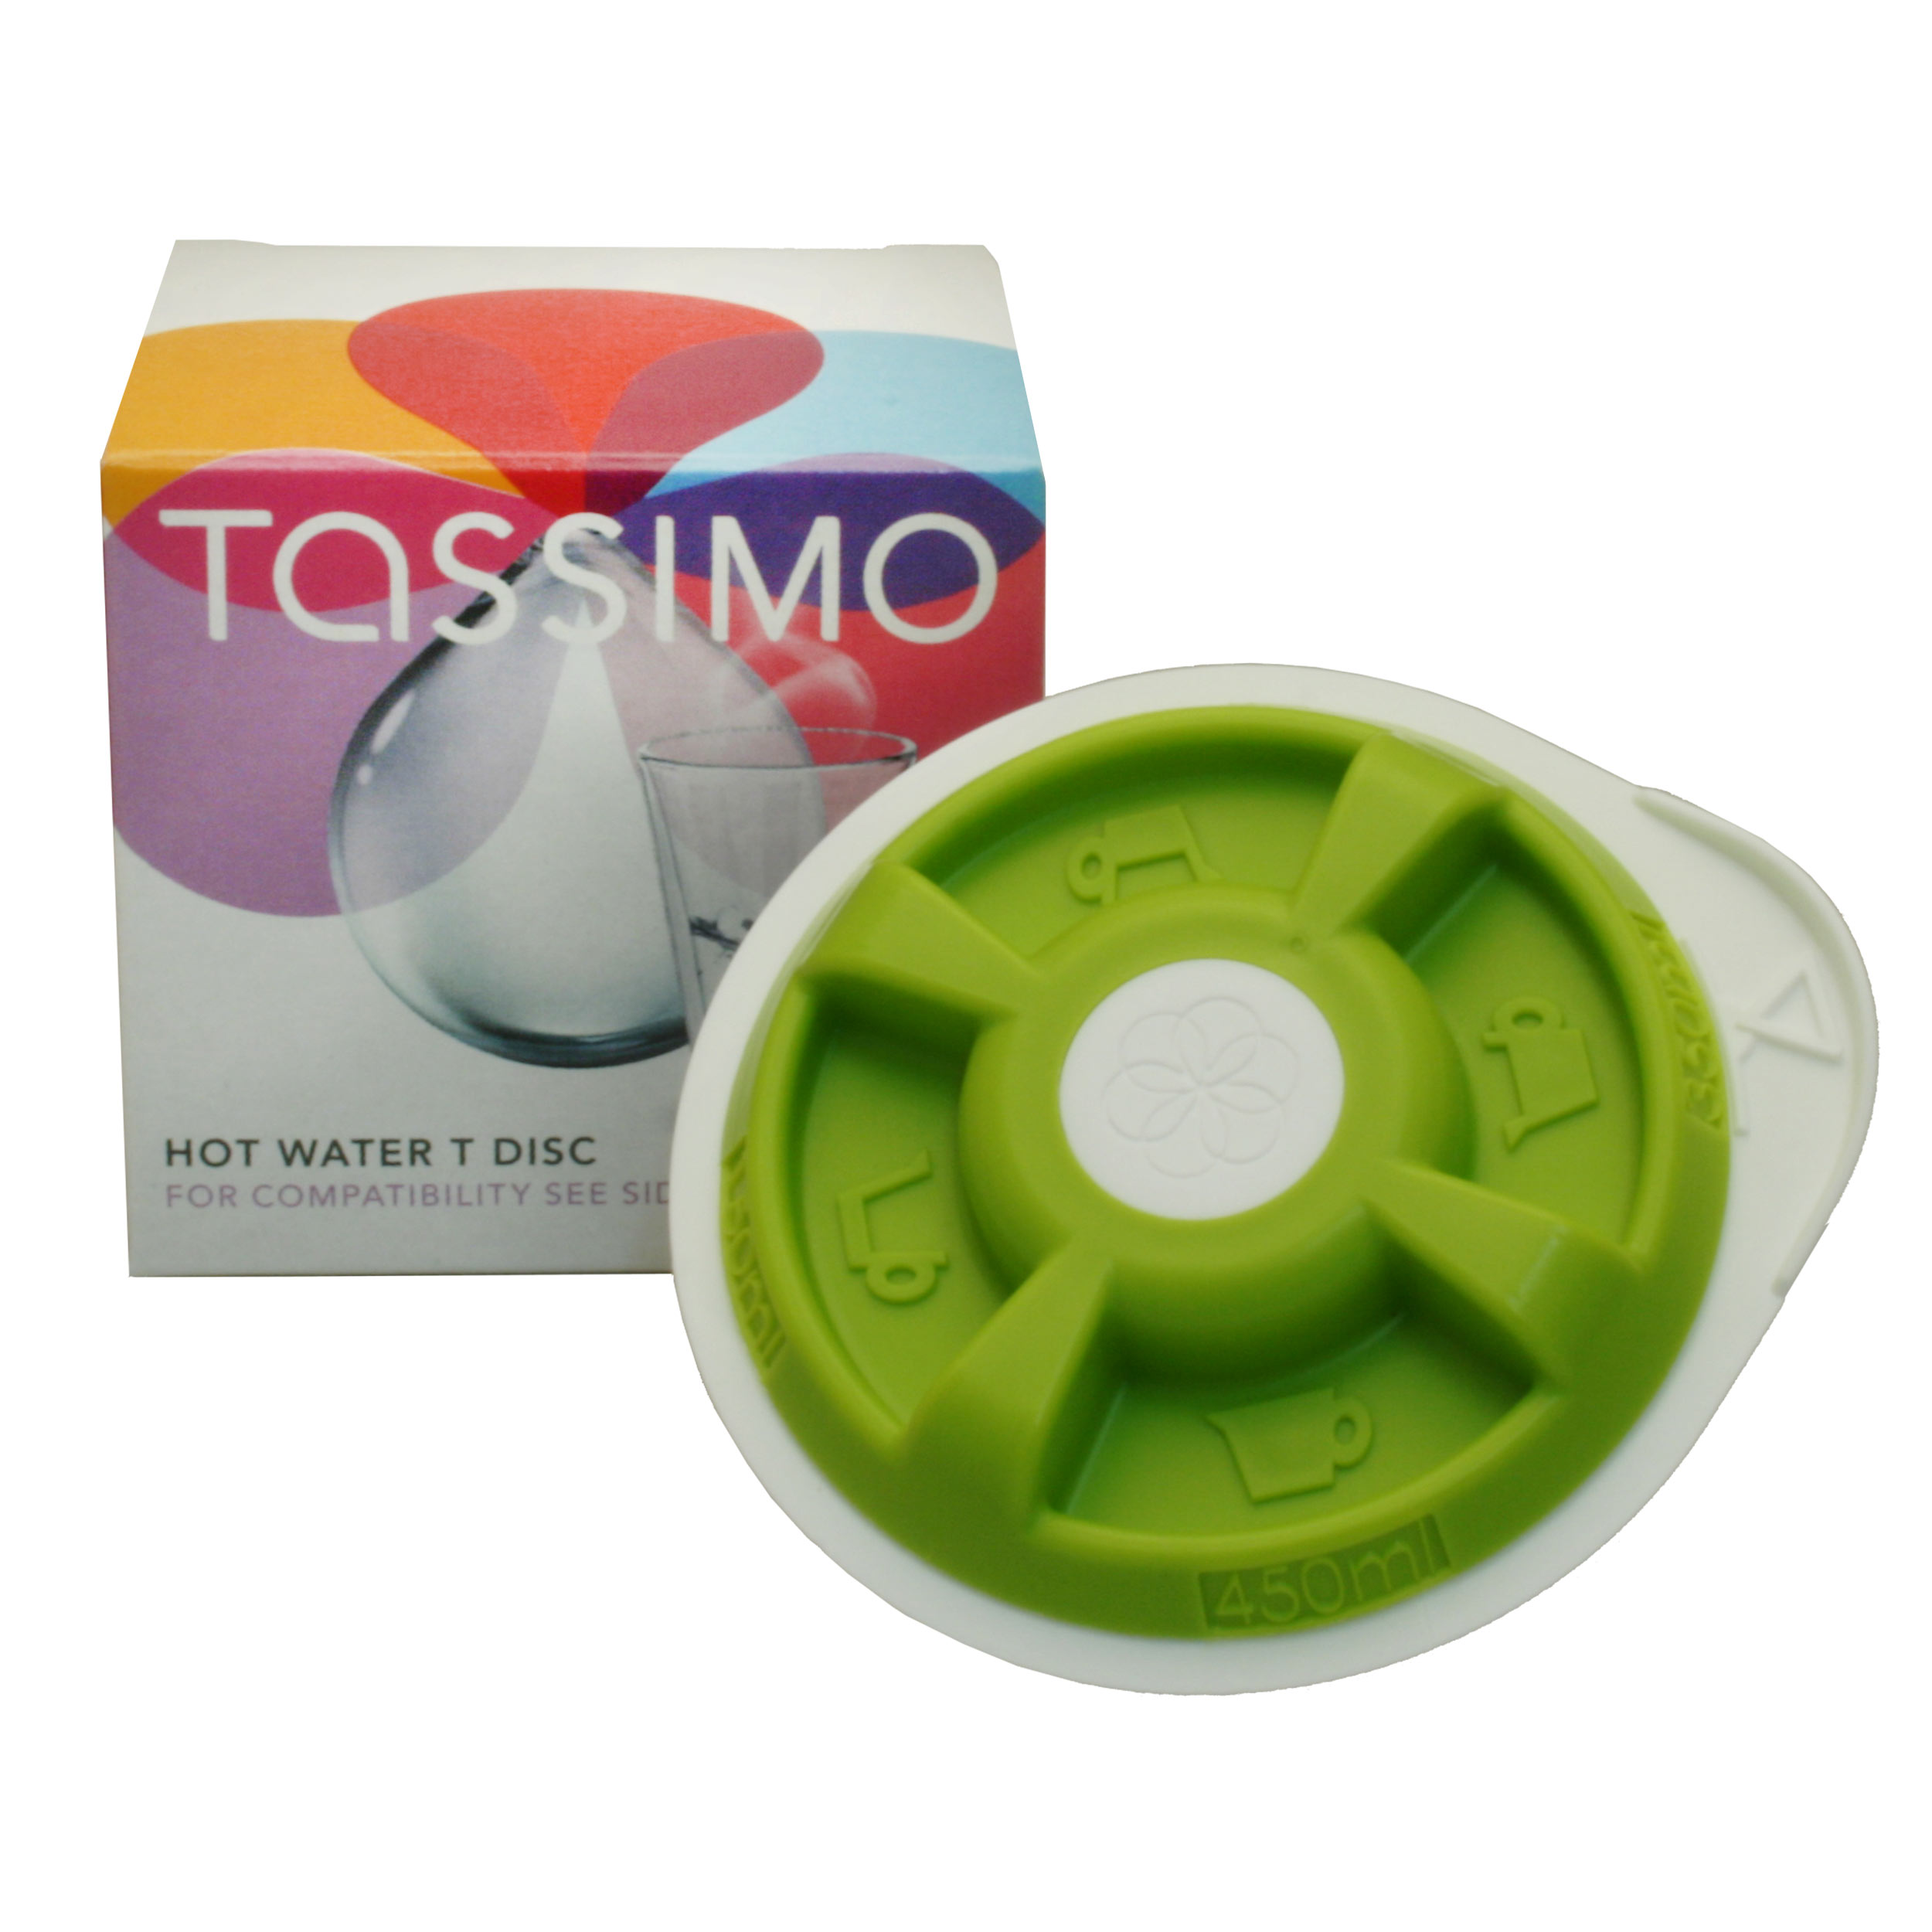 tassimo hot water t disc hot water preparer green for 150 450 ml bosch t20 t40 t42 t65 t85. Black Bedroom Furniture Sets. Home Design Ideas